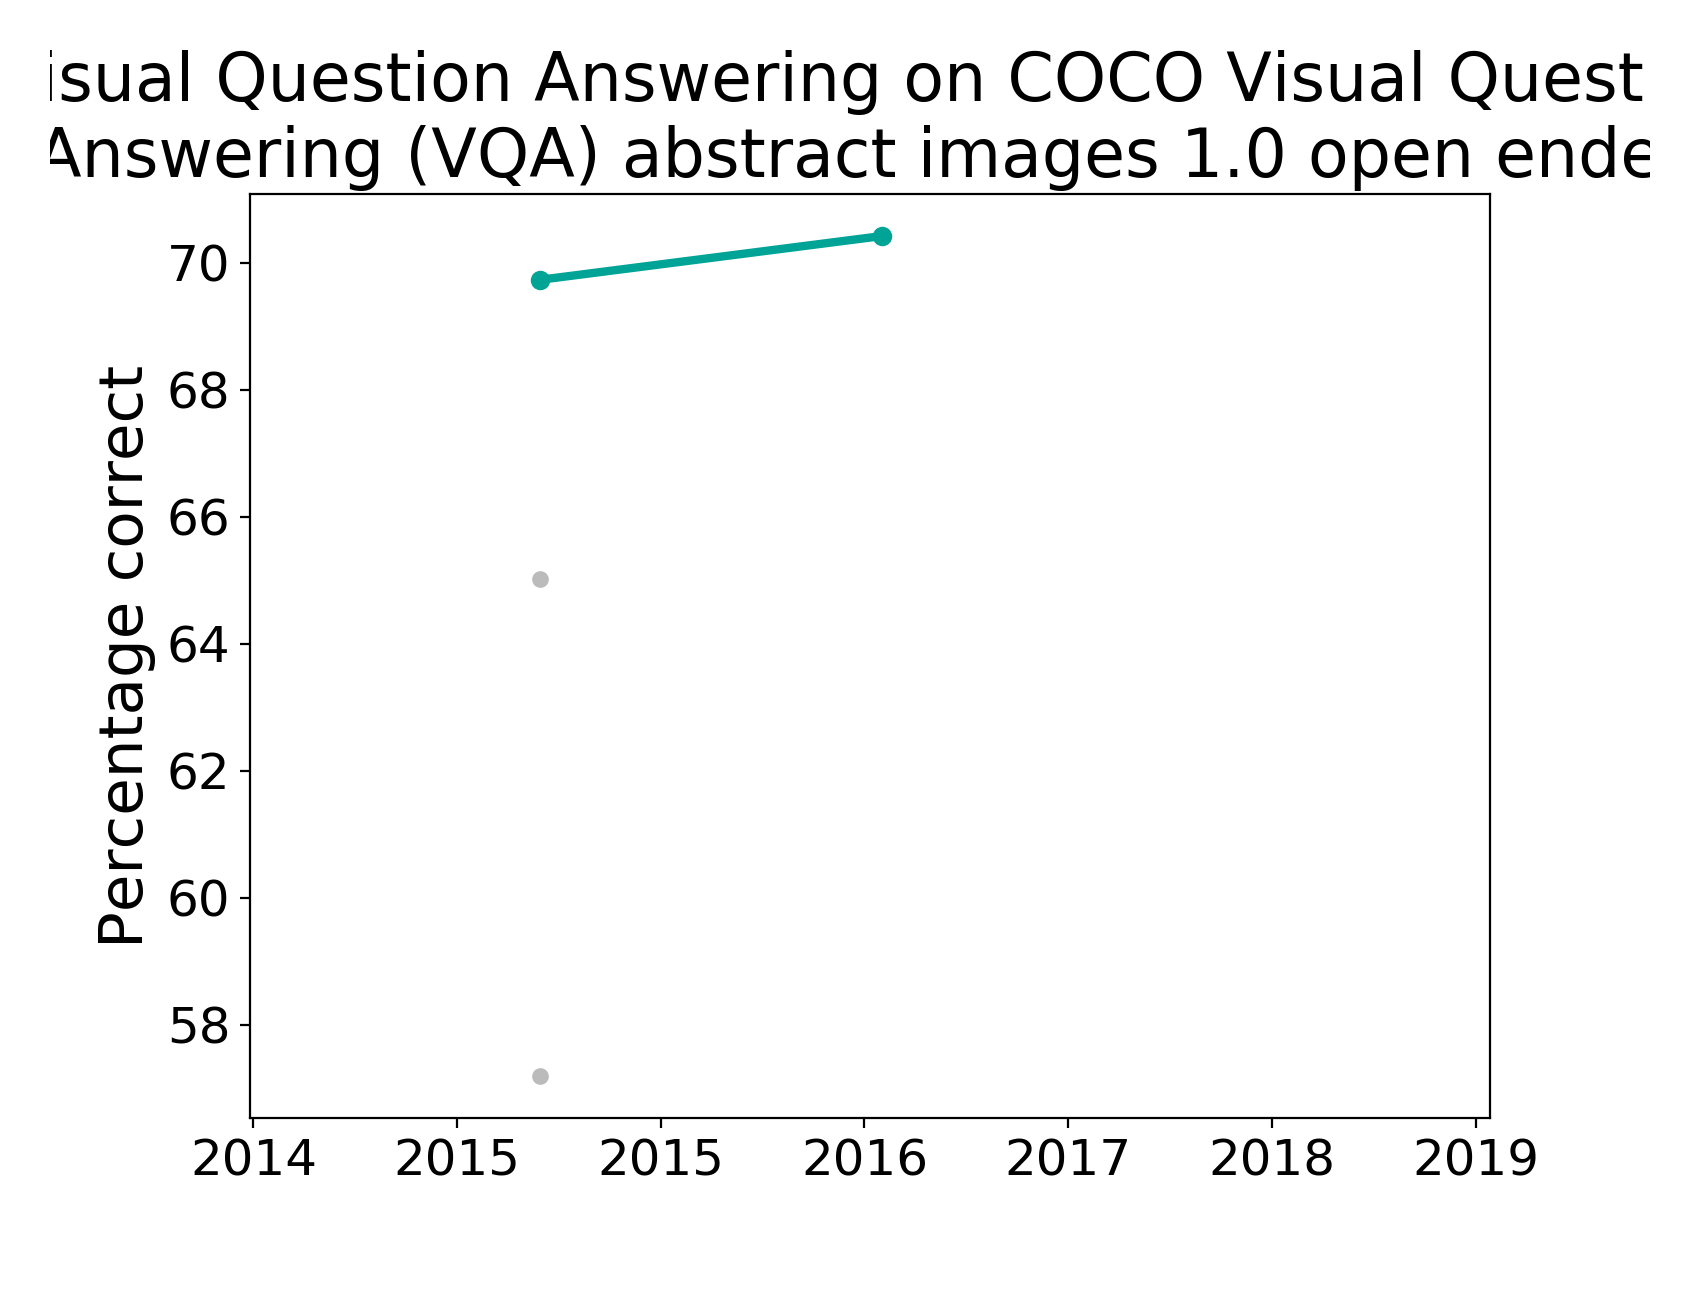 state of the art table for visual question answering on coco visual